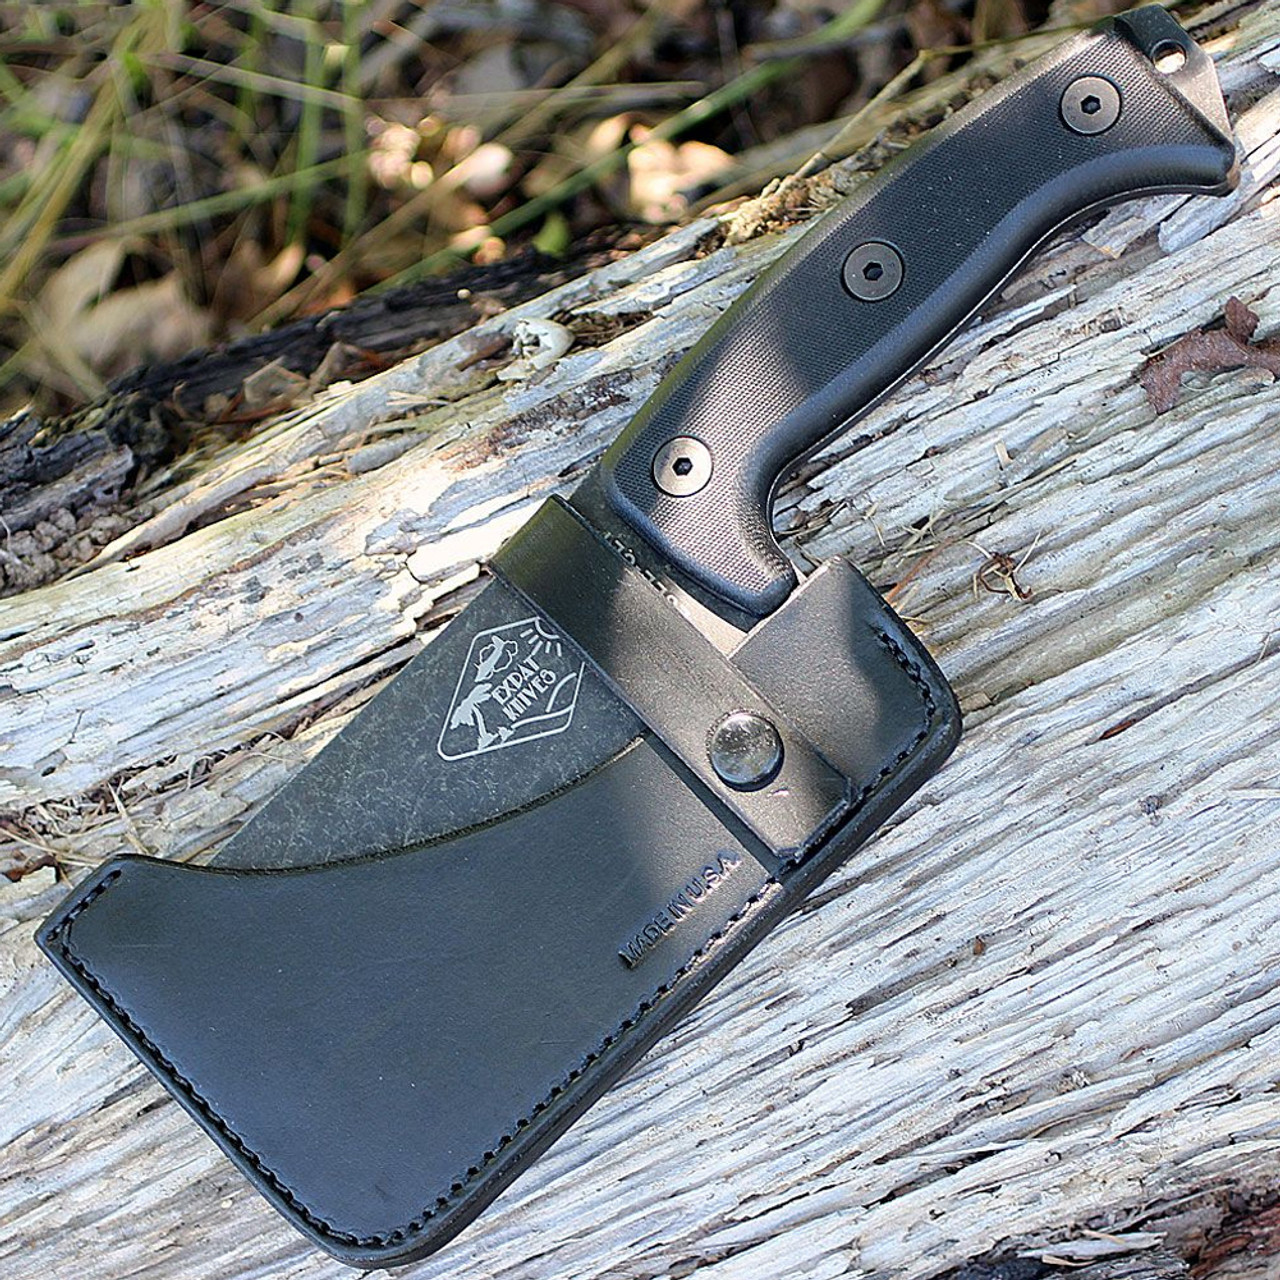 ESEE KNIVES Expat Knives Cleaver (ESEE-CL1)